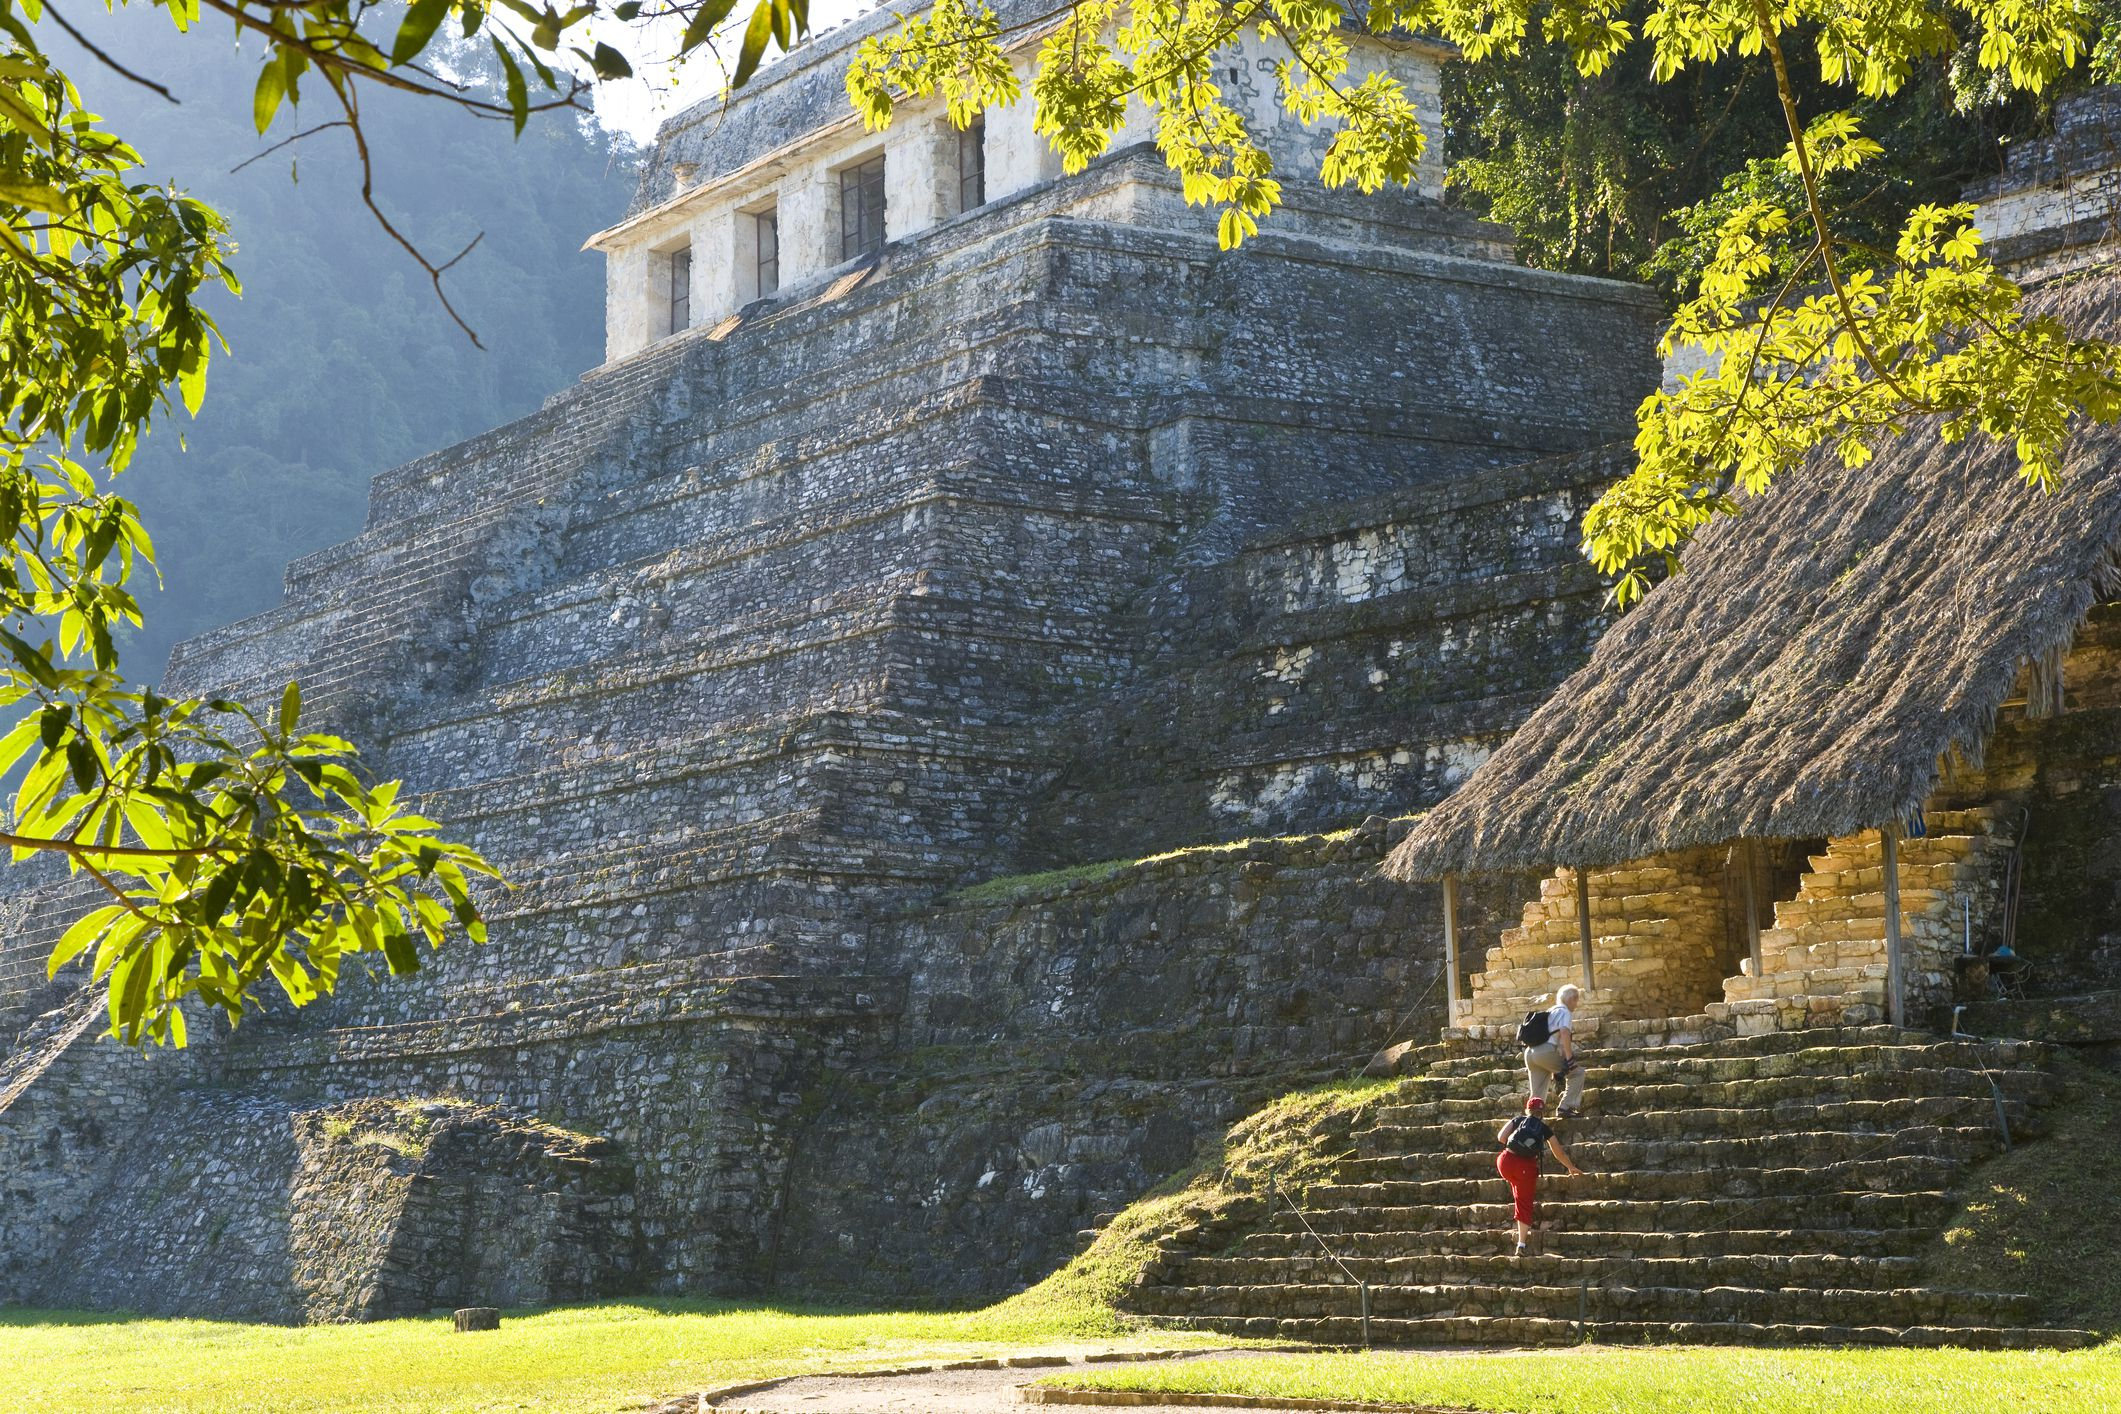 Nature and Ancient History Meet in the Mexican Town of Palenque